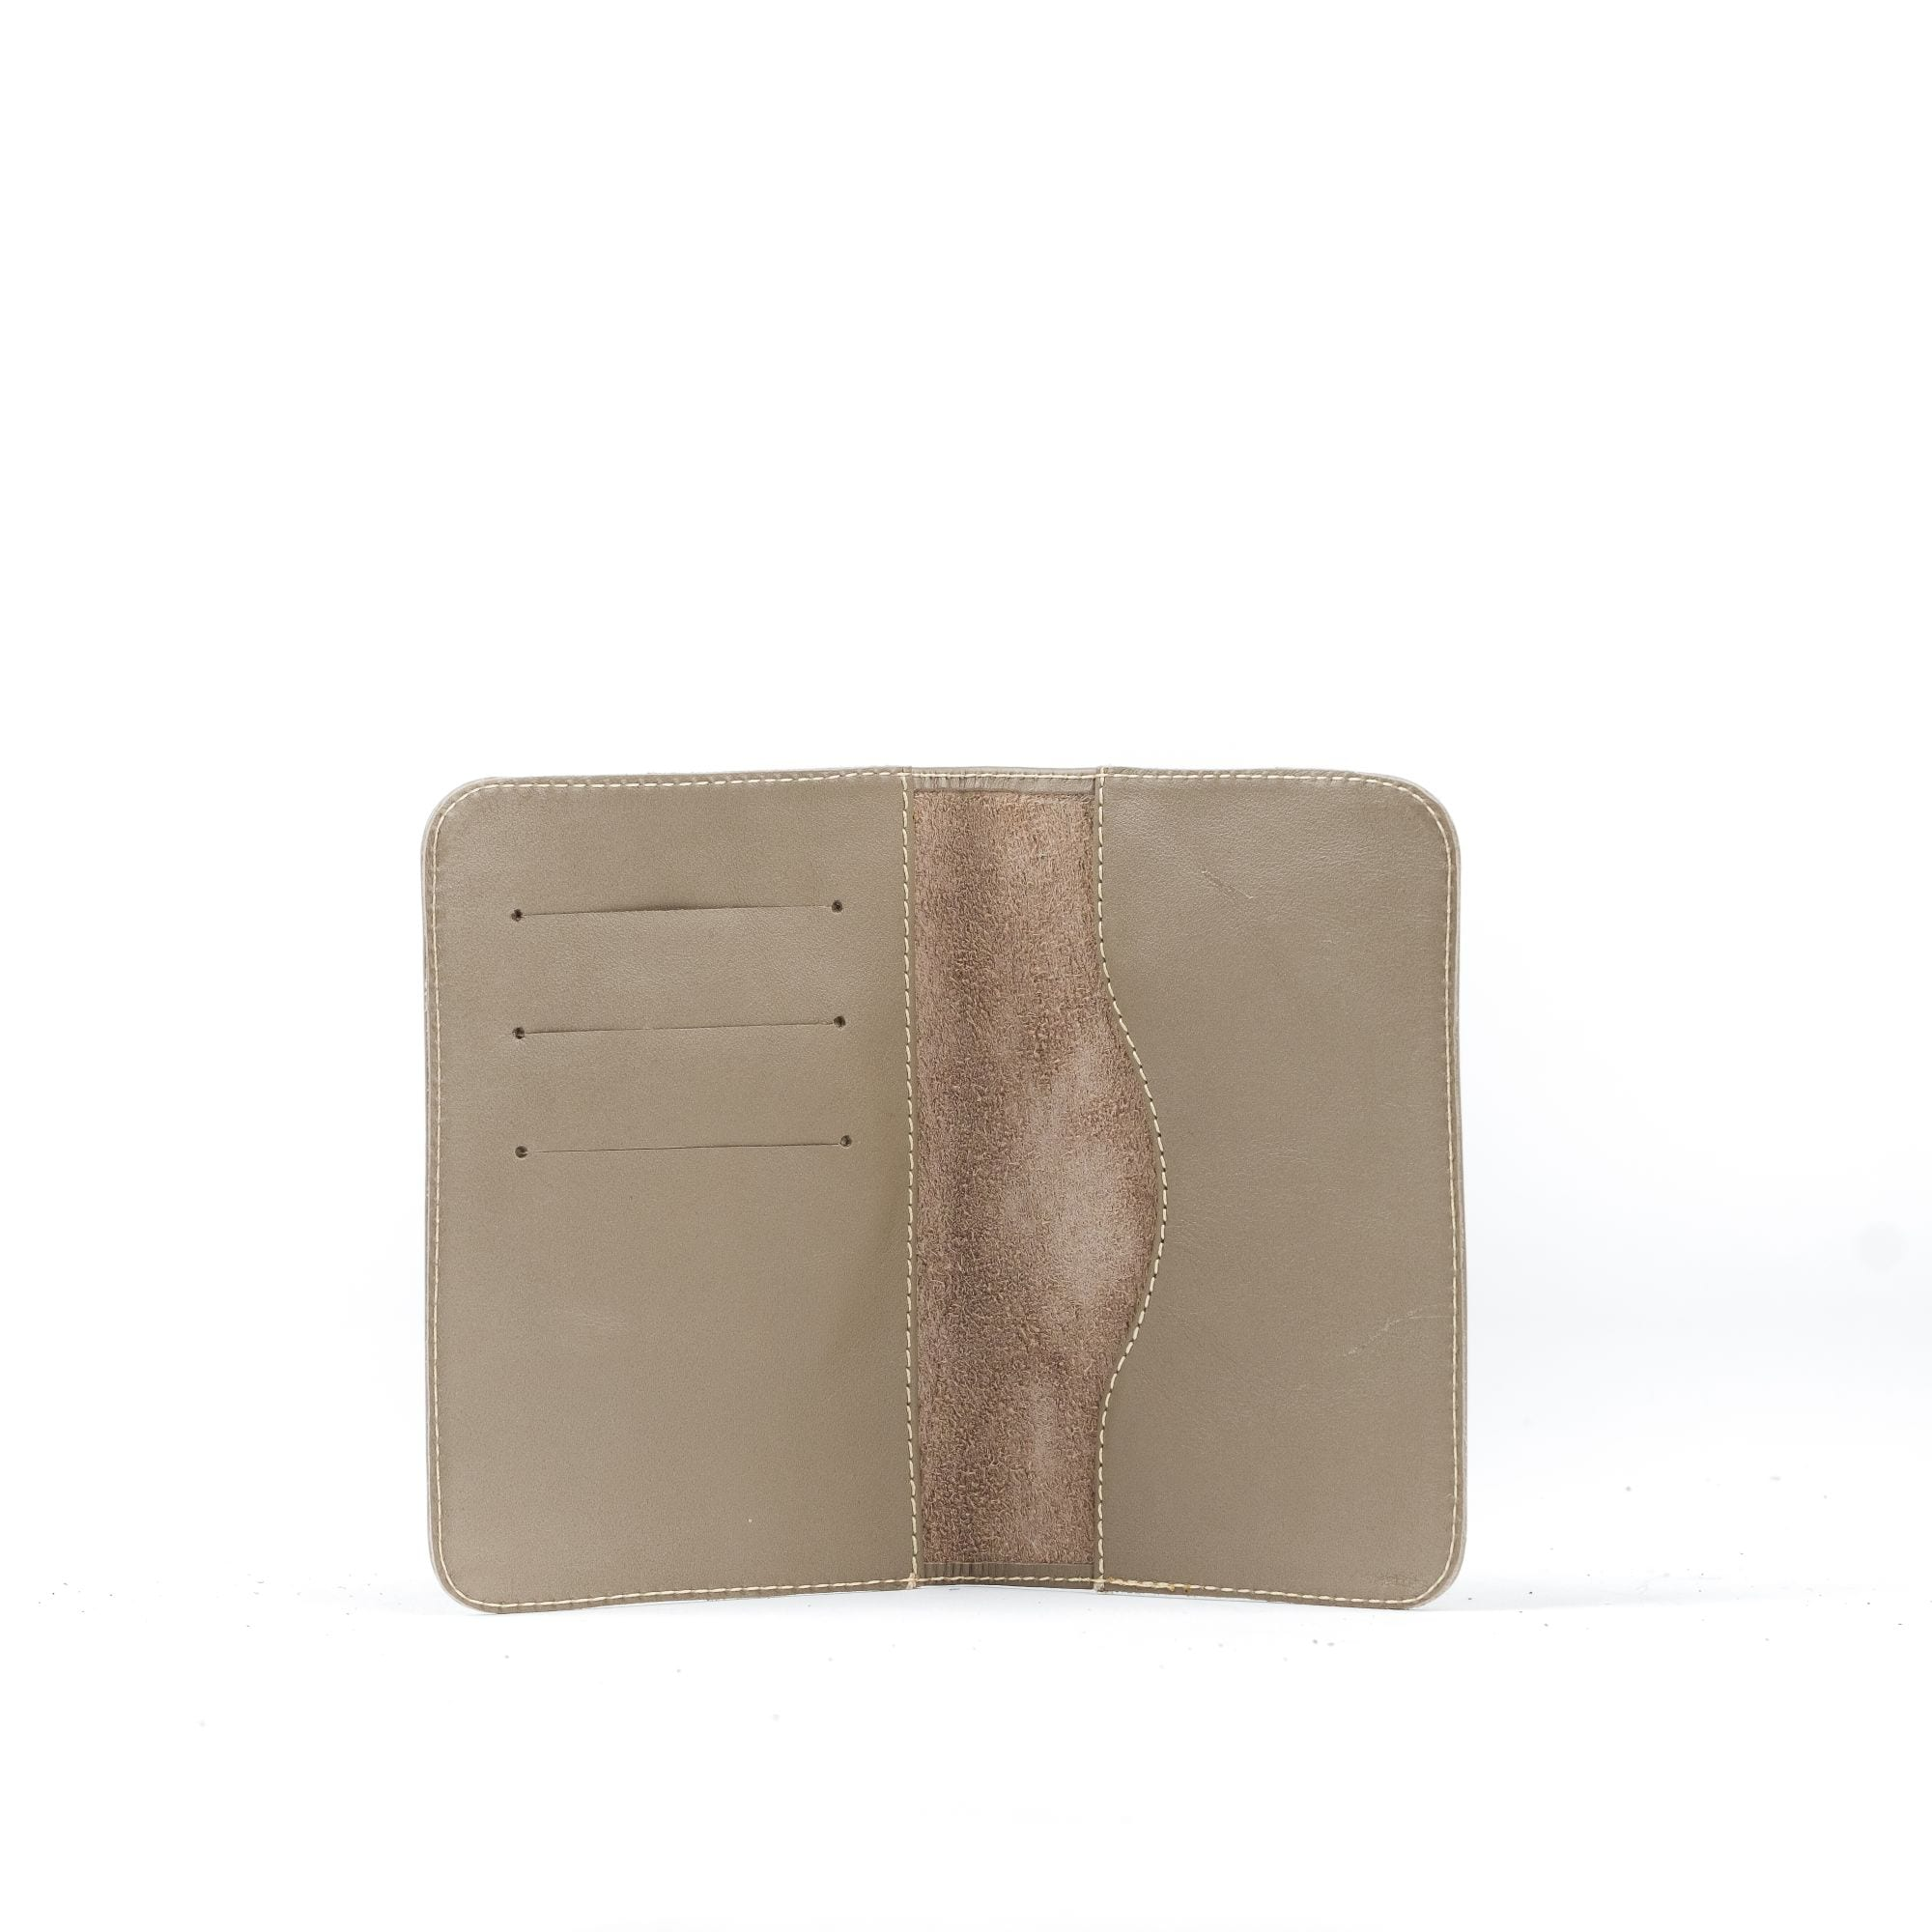 AHADUN Upcycled Leather Passport Cover